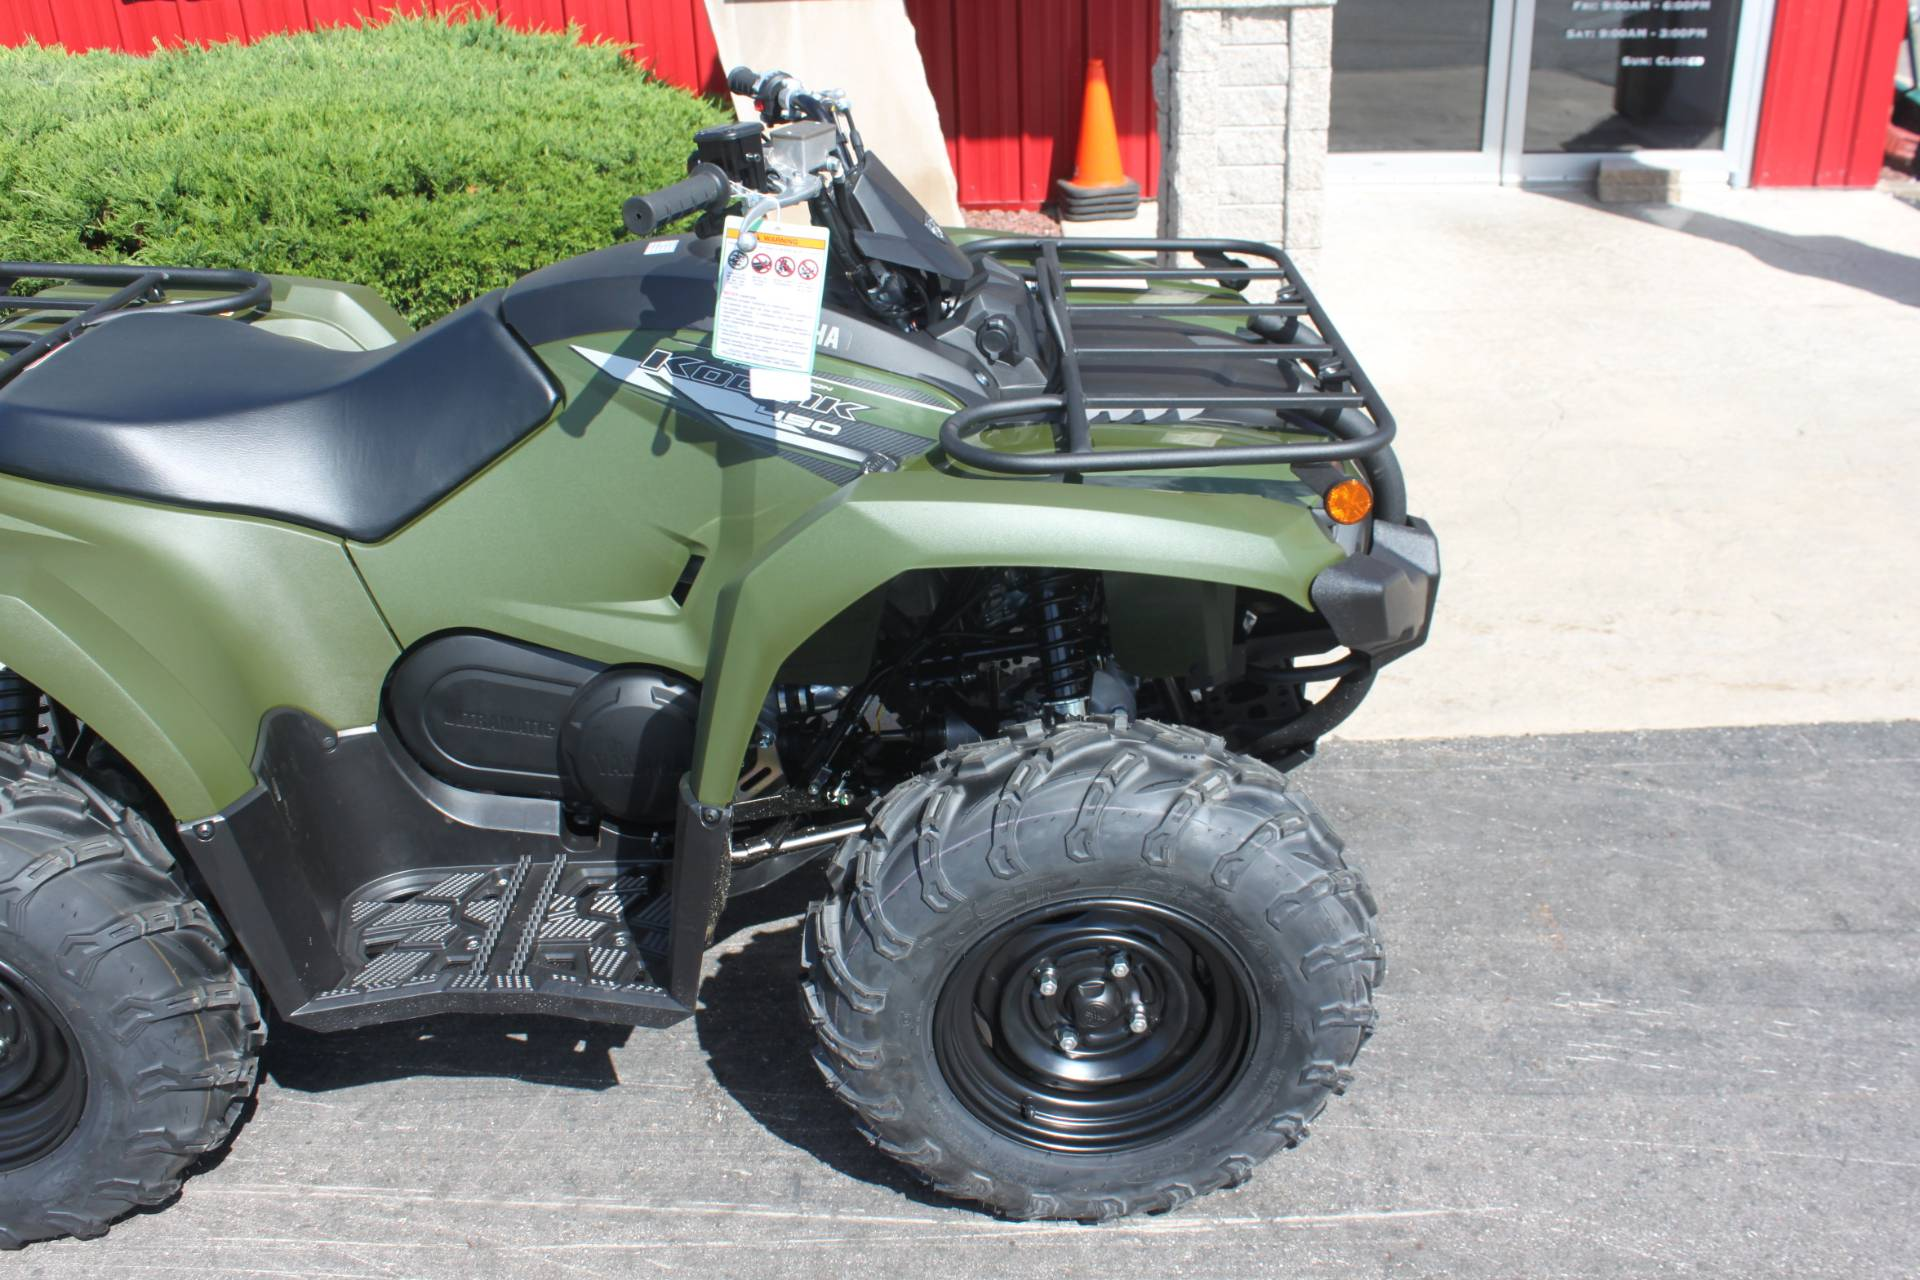 2020 Yamaha Kodiak 450 in Janesville, Wisconsin - Photo 12